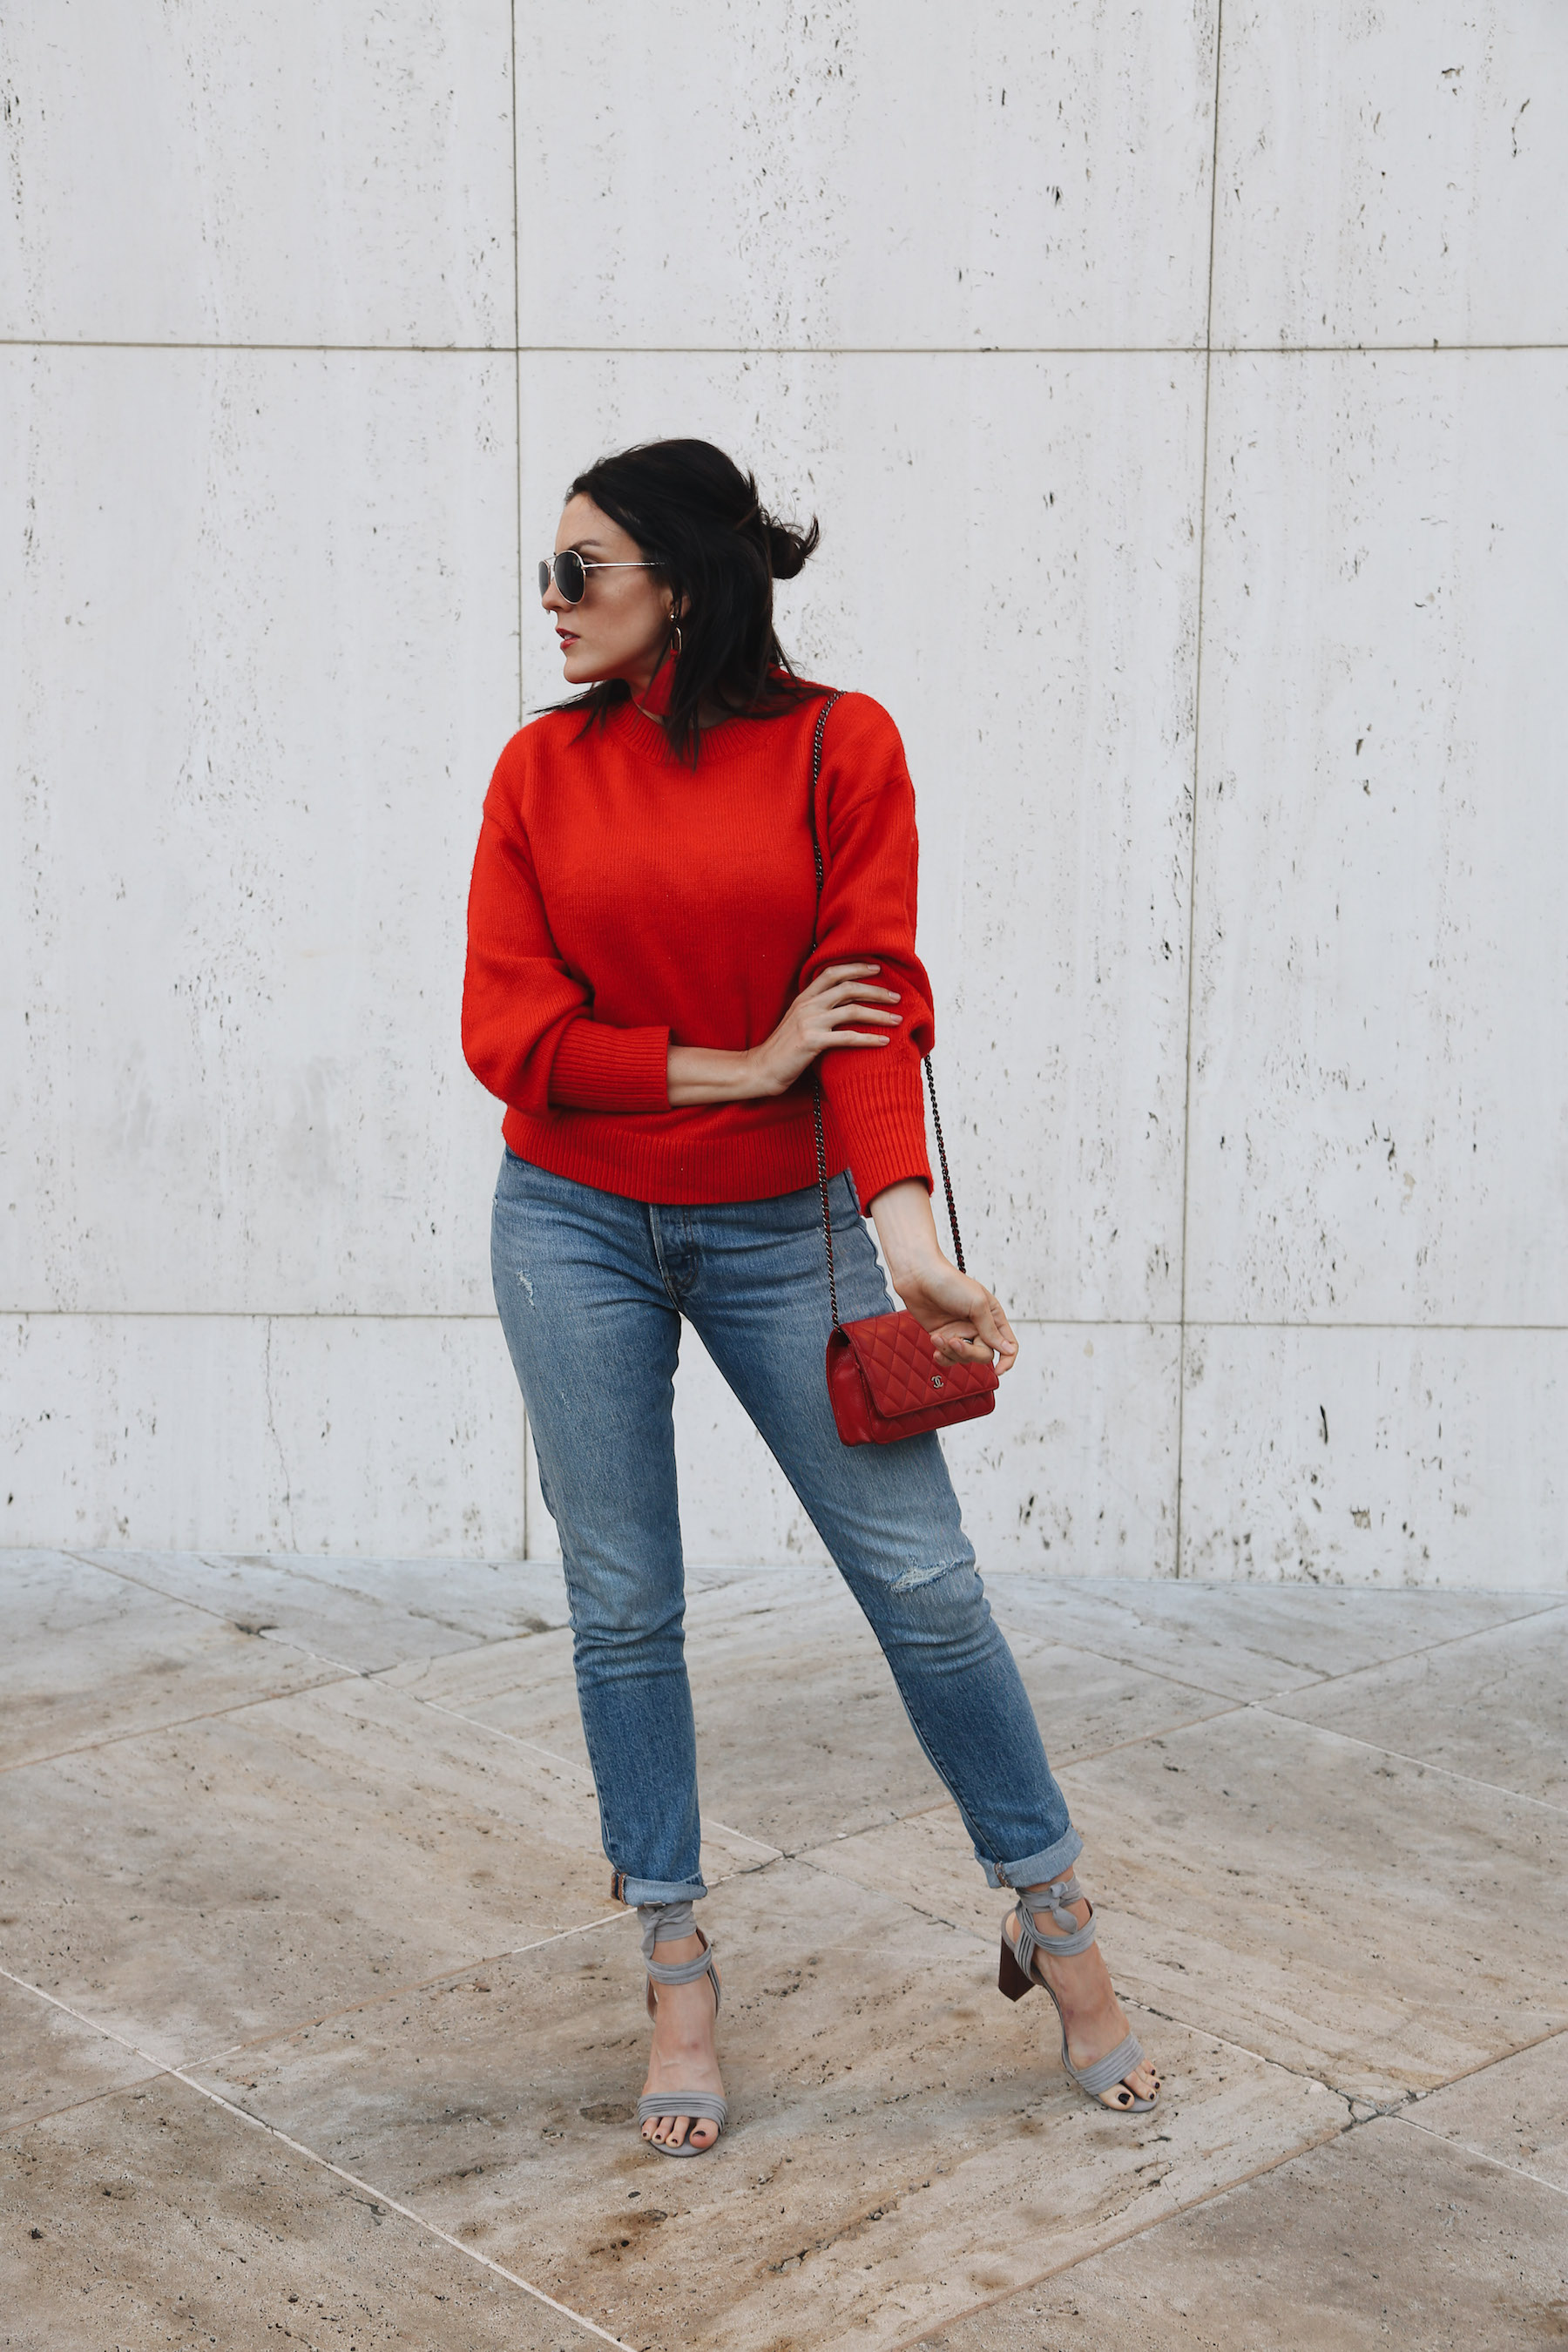 how to dress up a red sweater for the holidays2.jpg